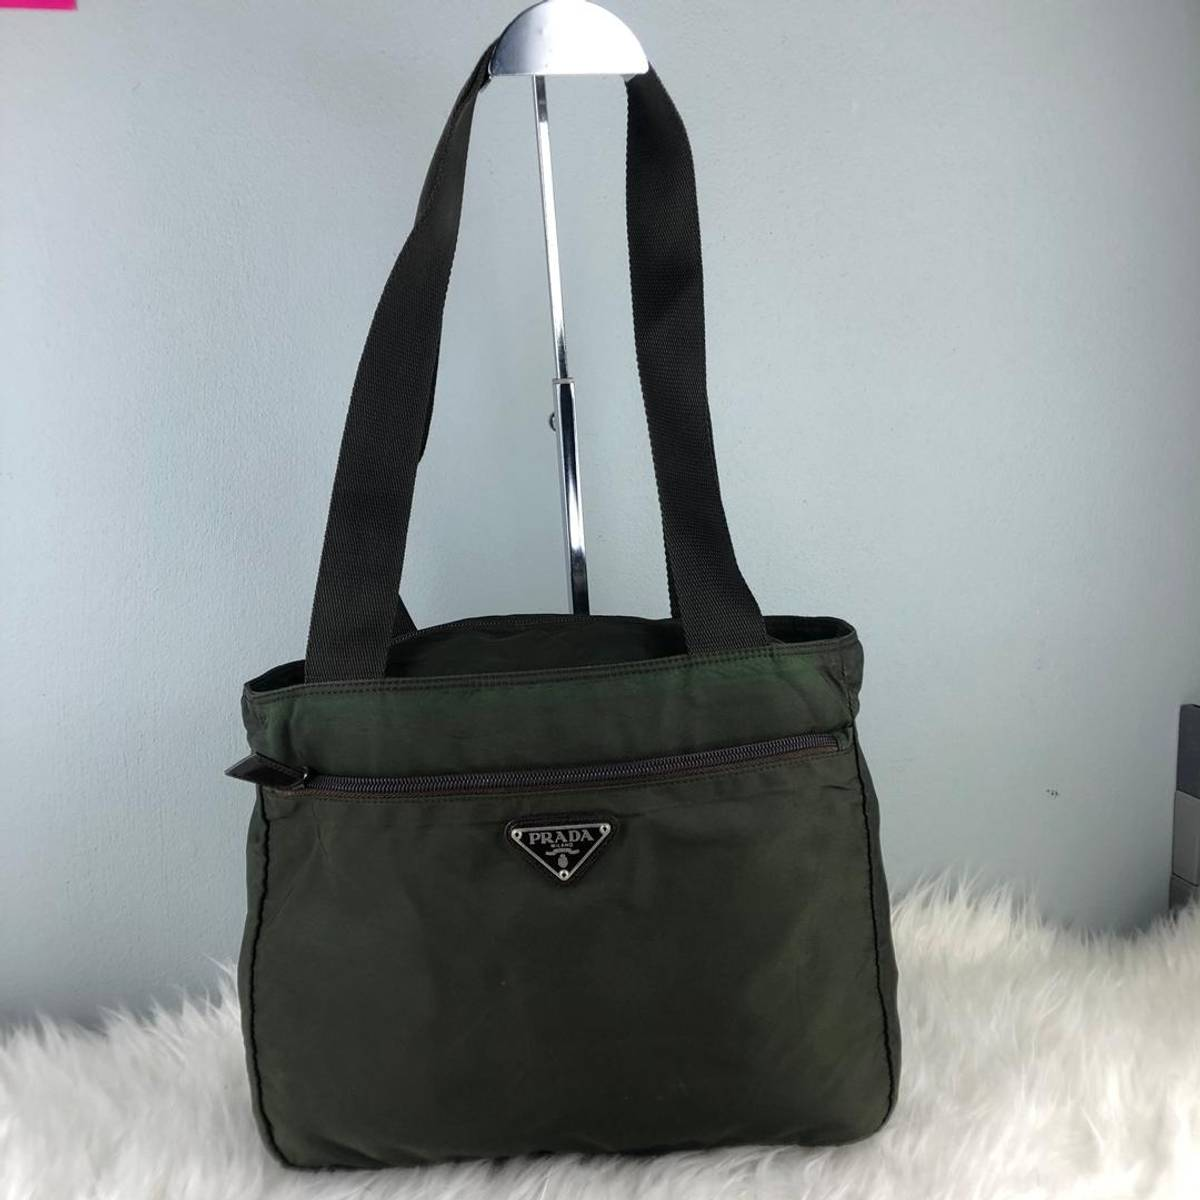 accc62f838454d Prada Rare & Collection Authentic Prada Nylon Dark Green Tote Bag ...